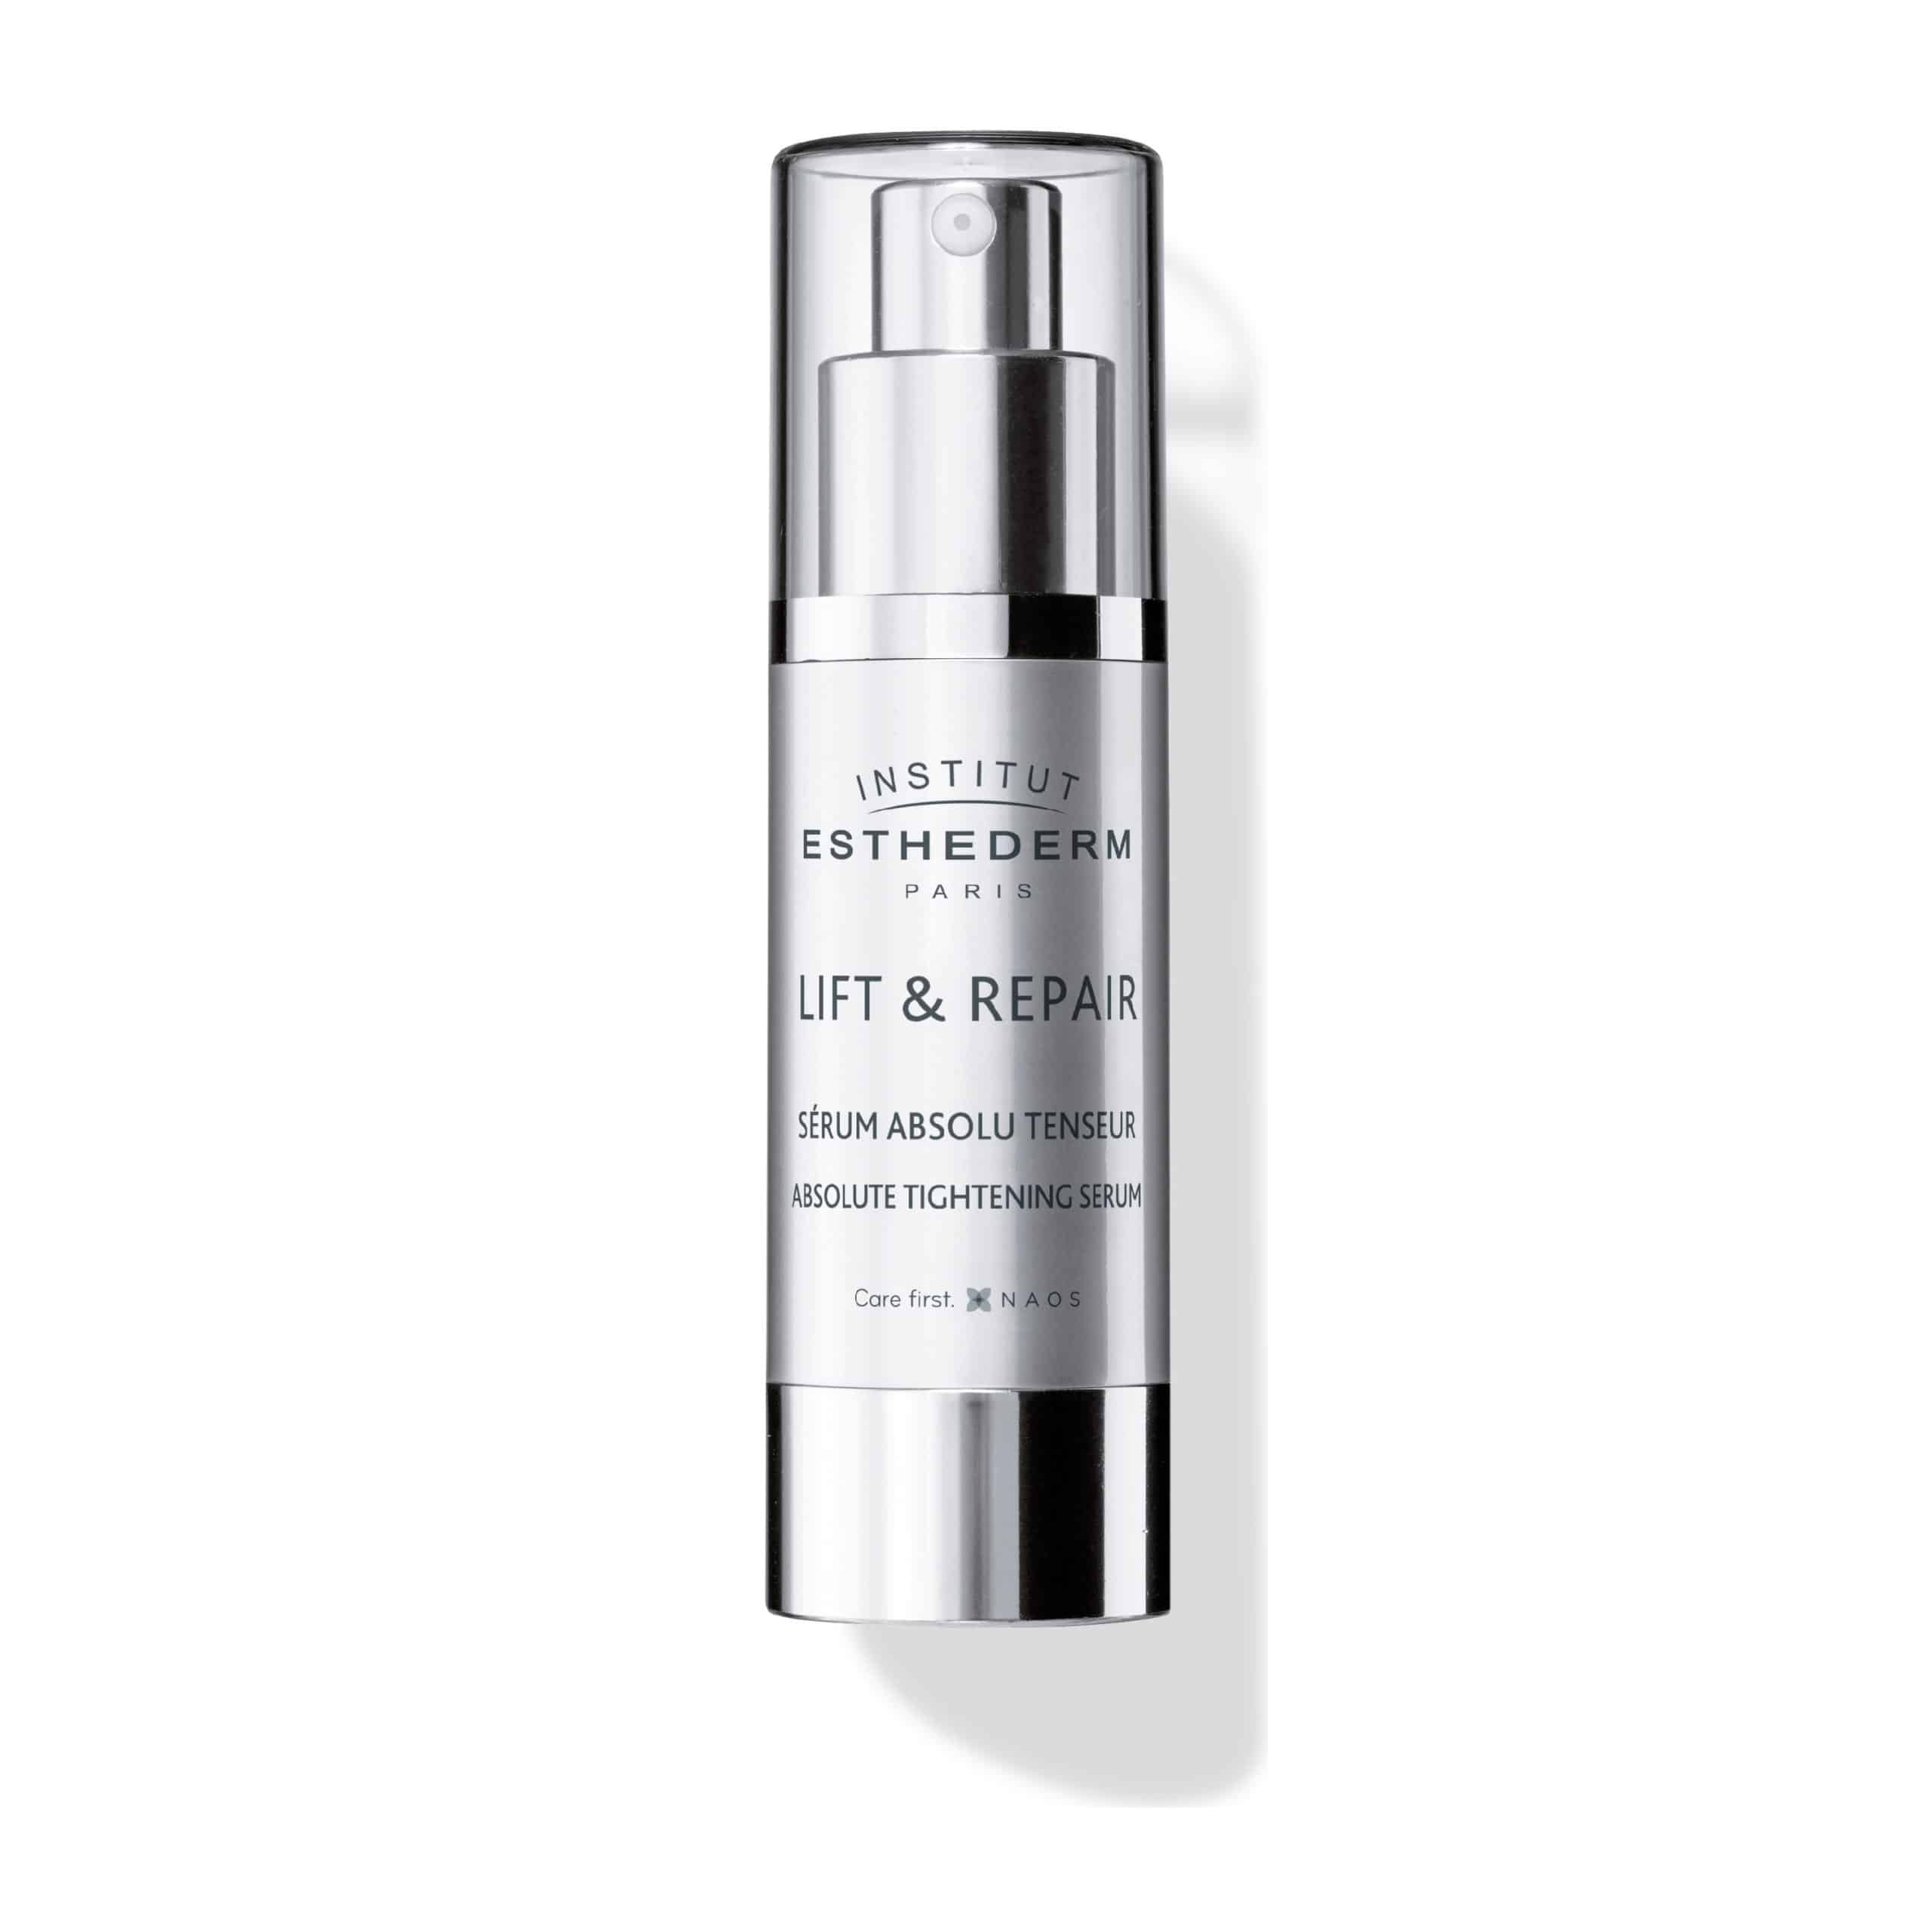 ESTHEDERM photo produit, Lift & Repair Sérum Absolu Tenseur 30ml, resculpte les contours du visage, anti-rides, lifting